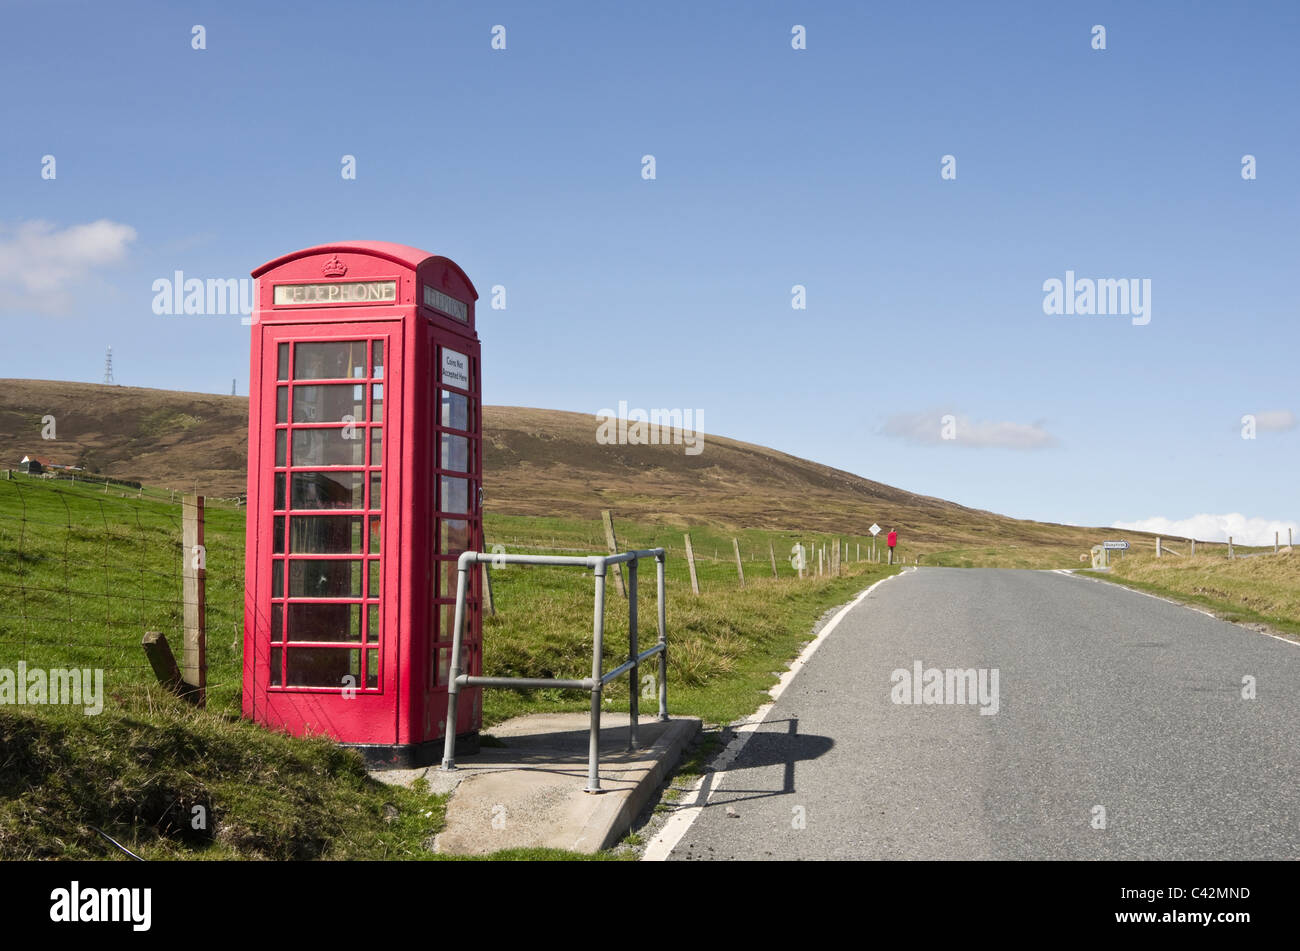 Single track empty country road and red telephone kiosk box. Voe, Northmavine, Shetland Islands, Scotland, UK, Britain. - Stock Image